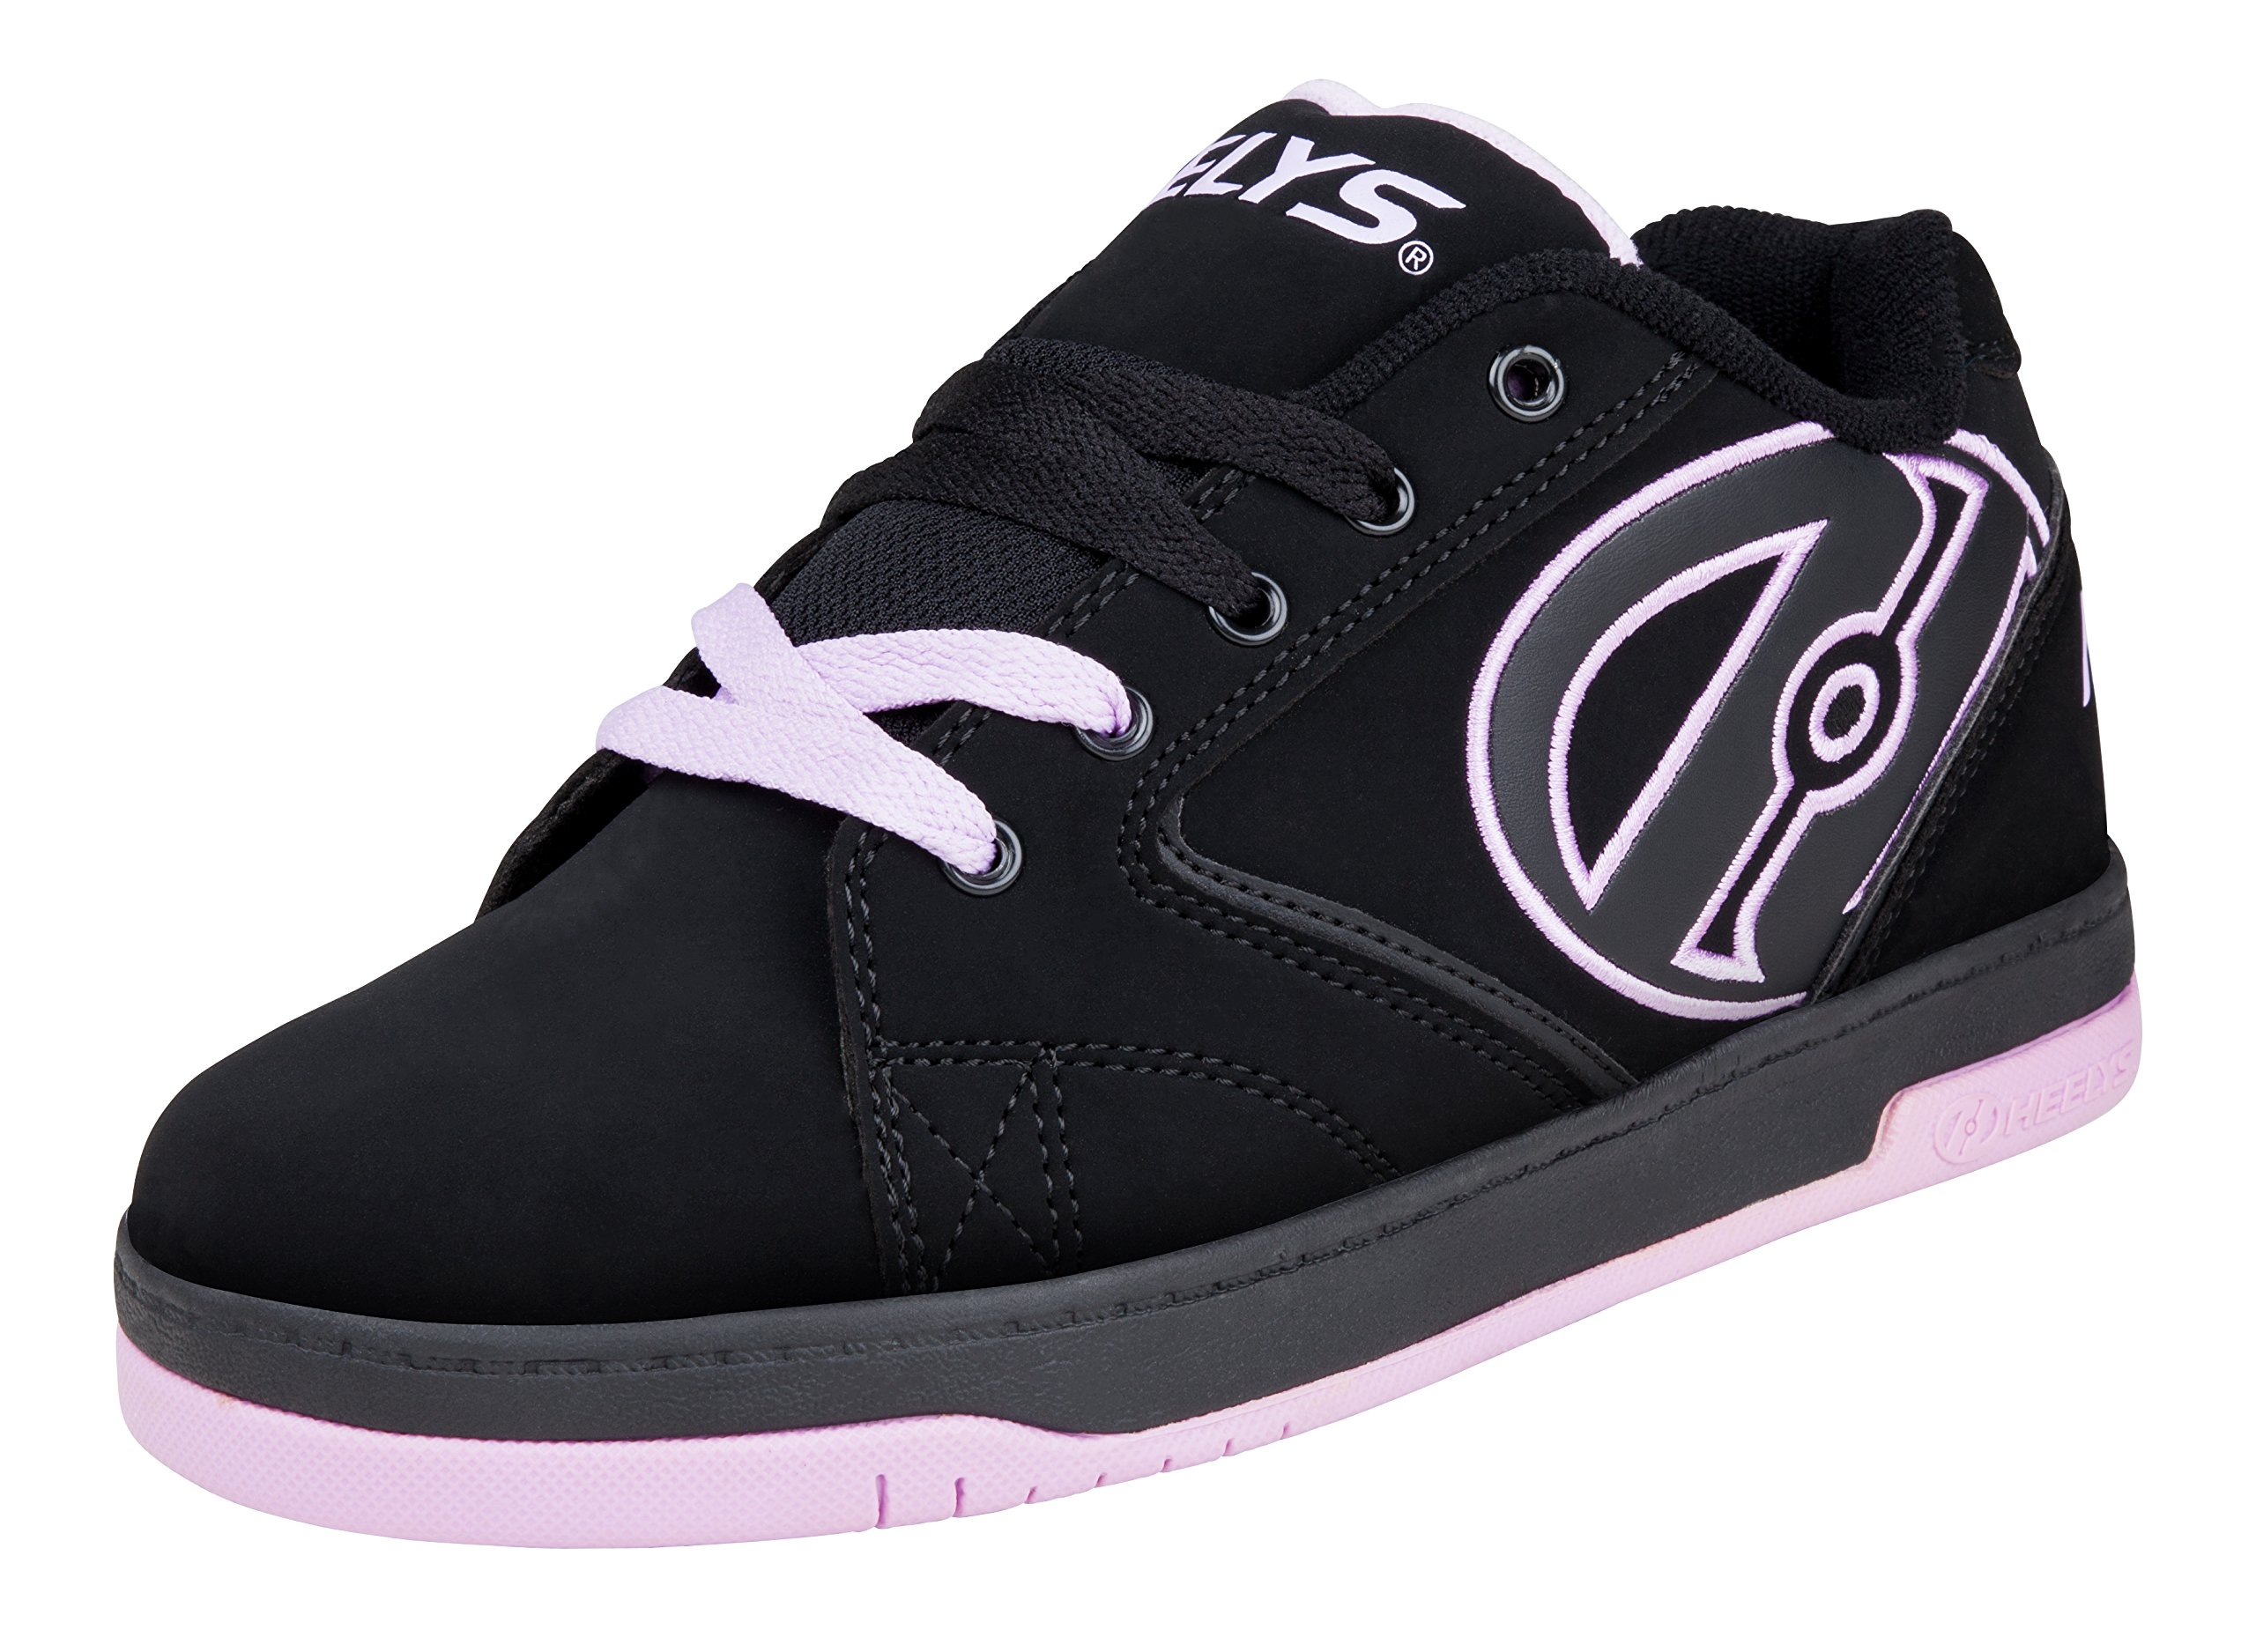 Heelys Girl's Propel 2.0 (Little Kid/Big Kid/Adult) Black/Lilac Sneaker 13 Little Kid M